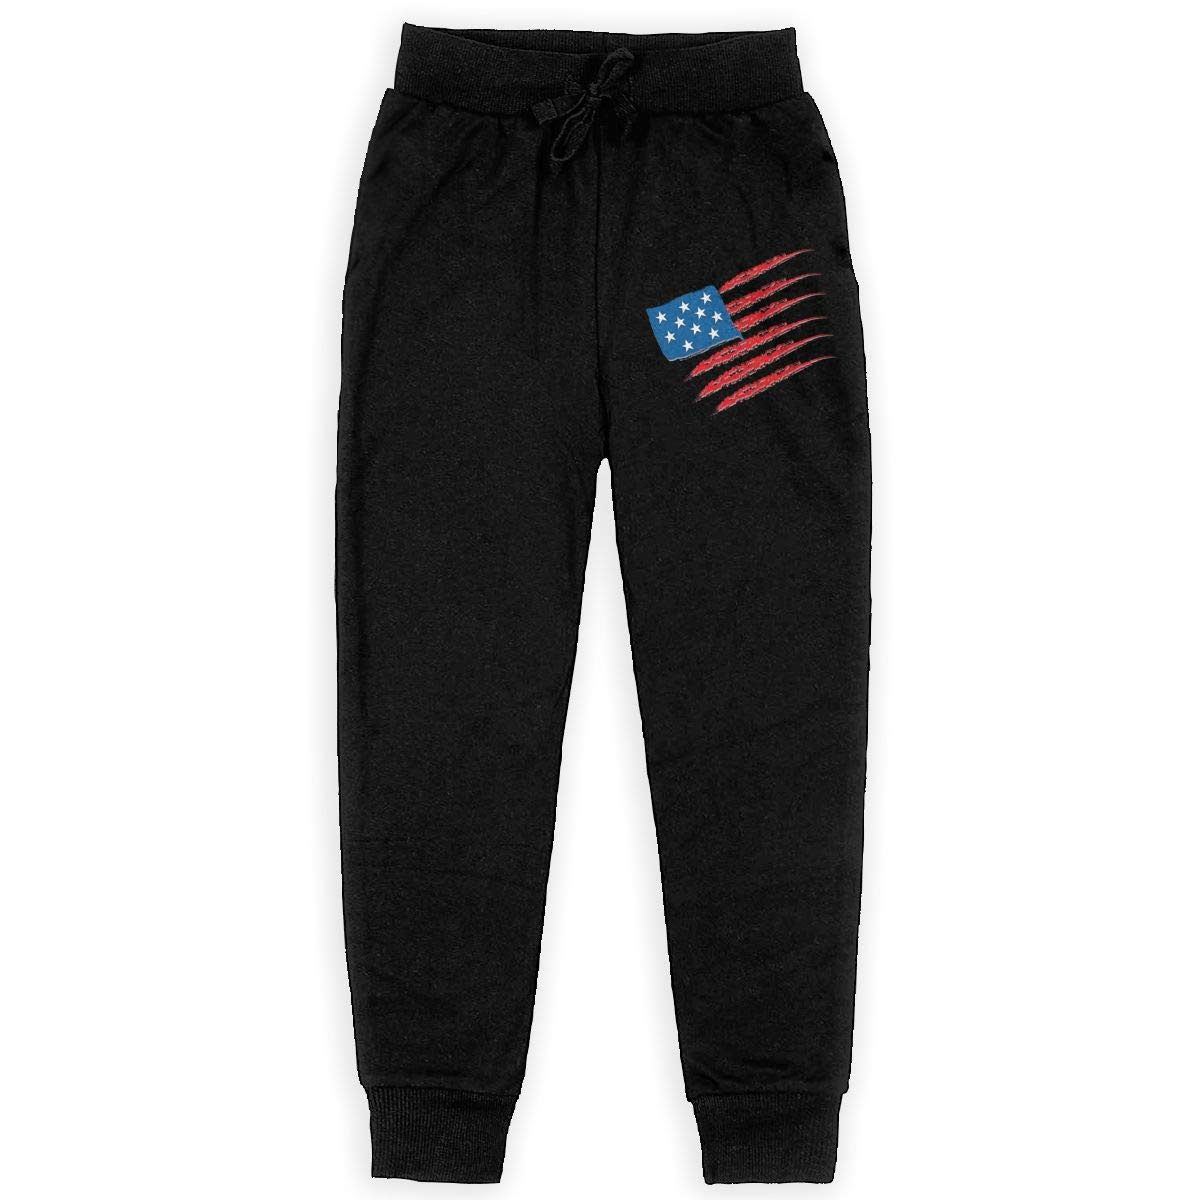 United-States Boys Athletic Smart Fleece Pant Youth Soft and Cozy Sweatpants